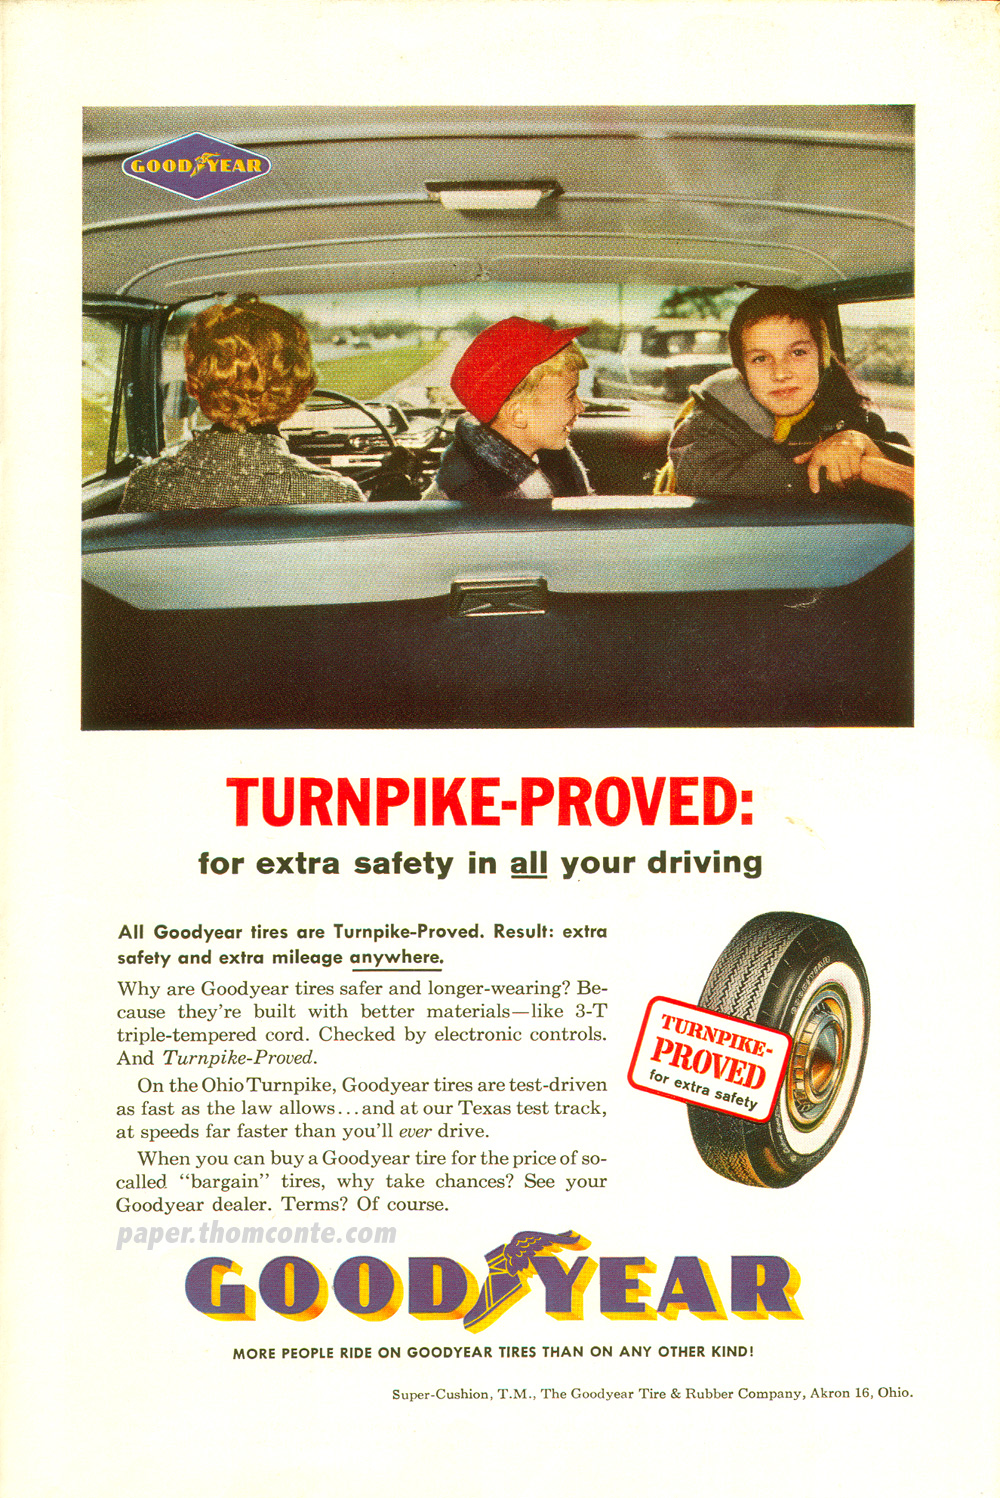 Goodyear Tires advertisement - Turnpike Proved